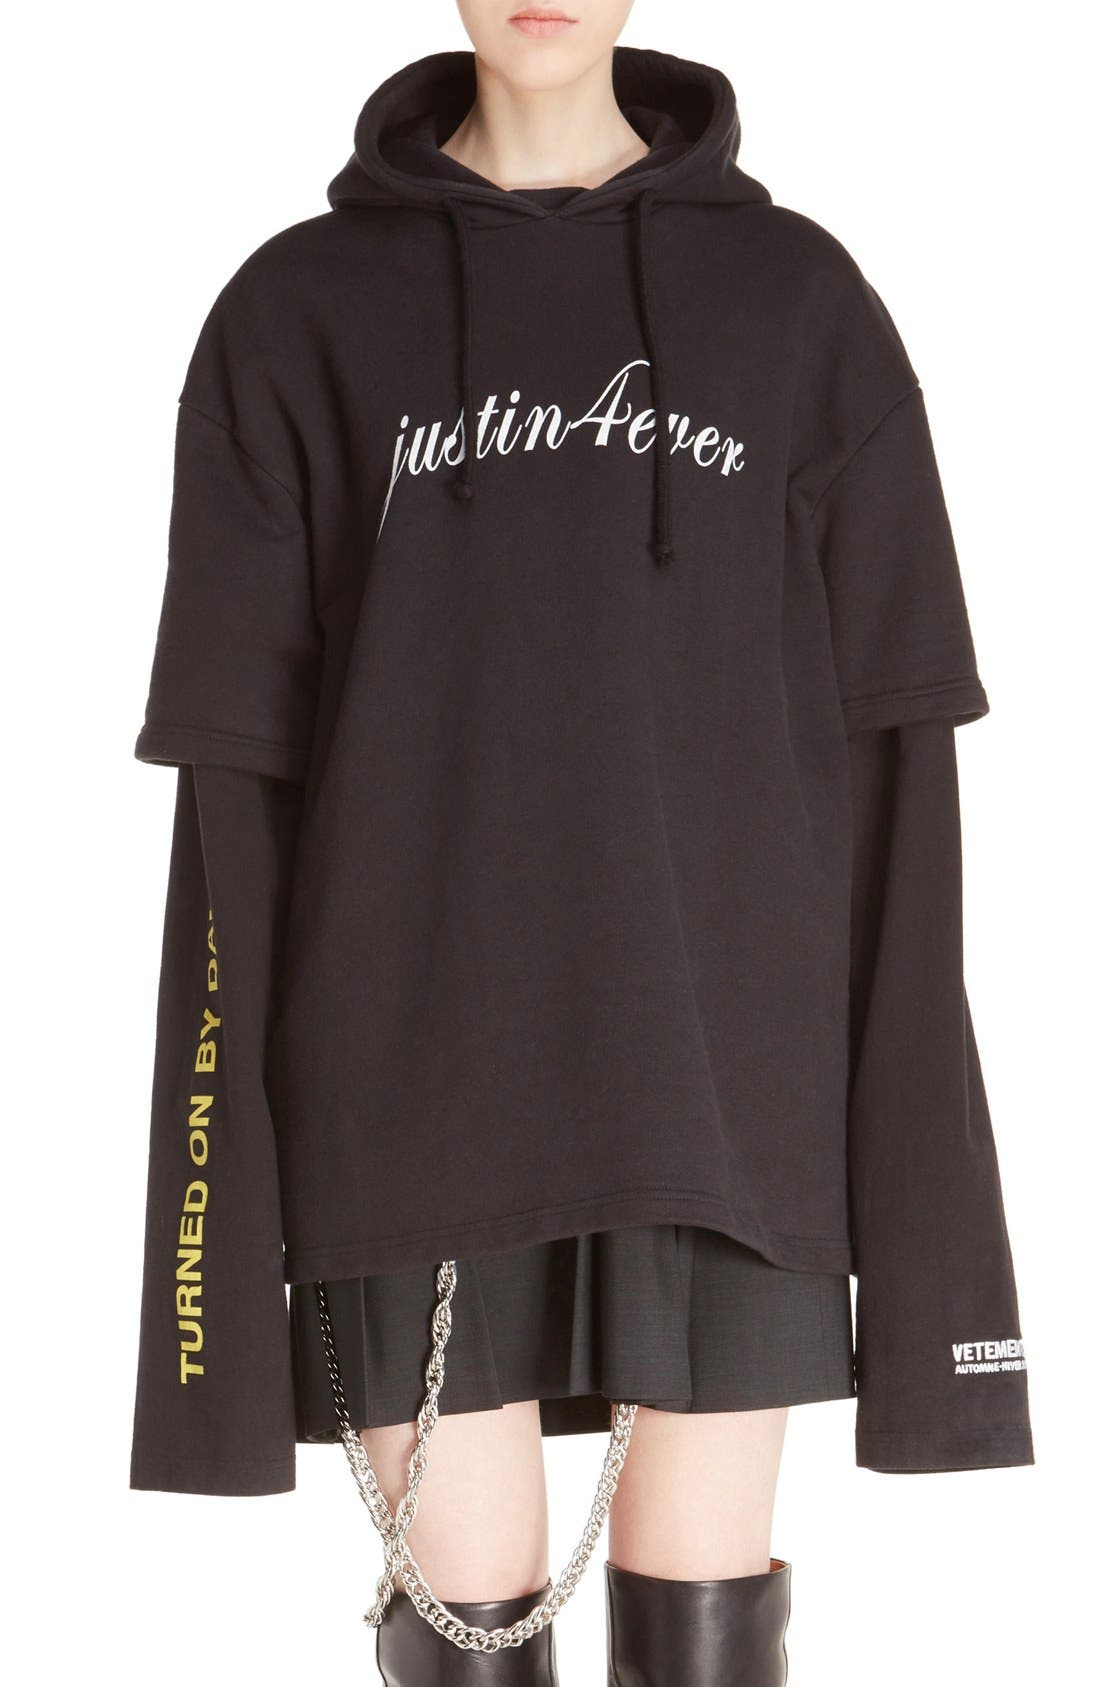 Alternate Image 1 Selected - Vetements 'Justin4Ever' Double Sleeve Graphic Hoodie Dress